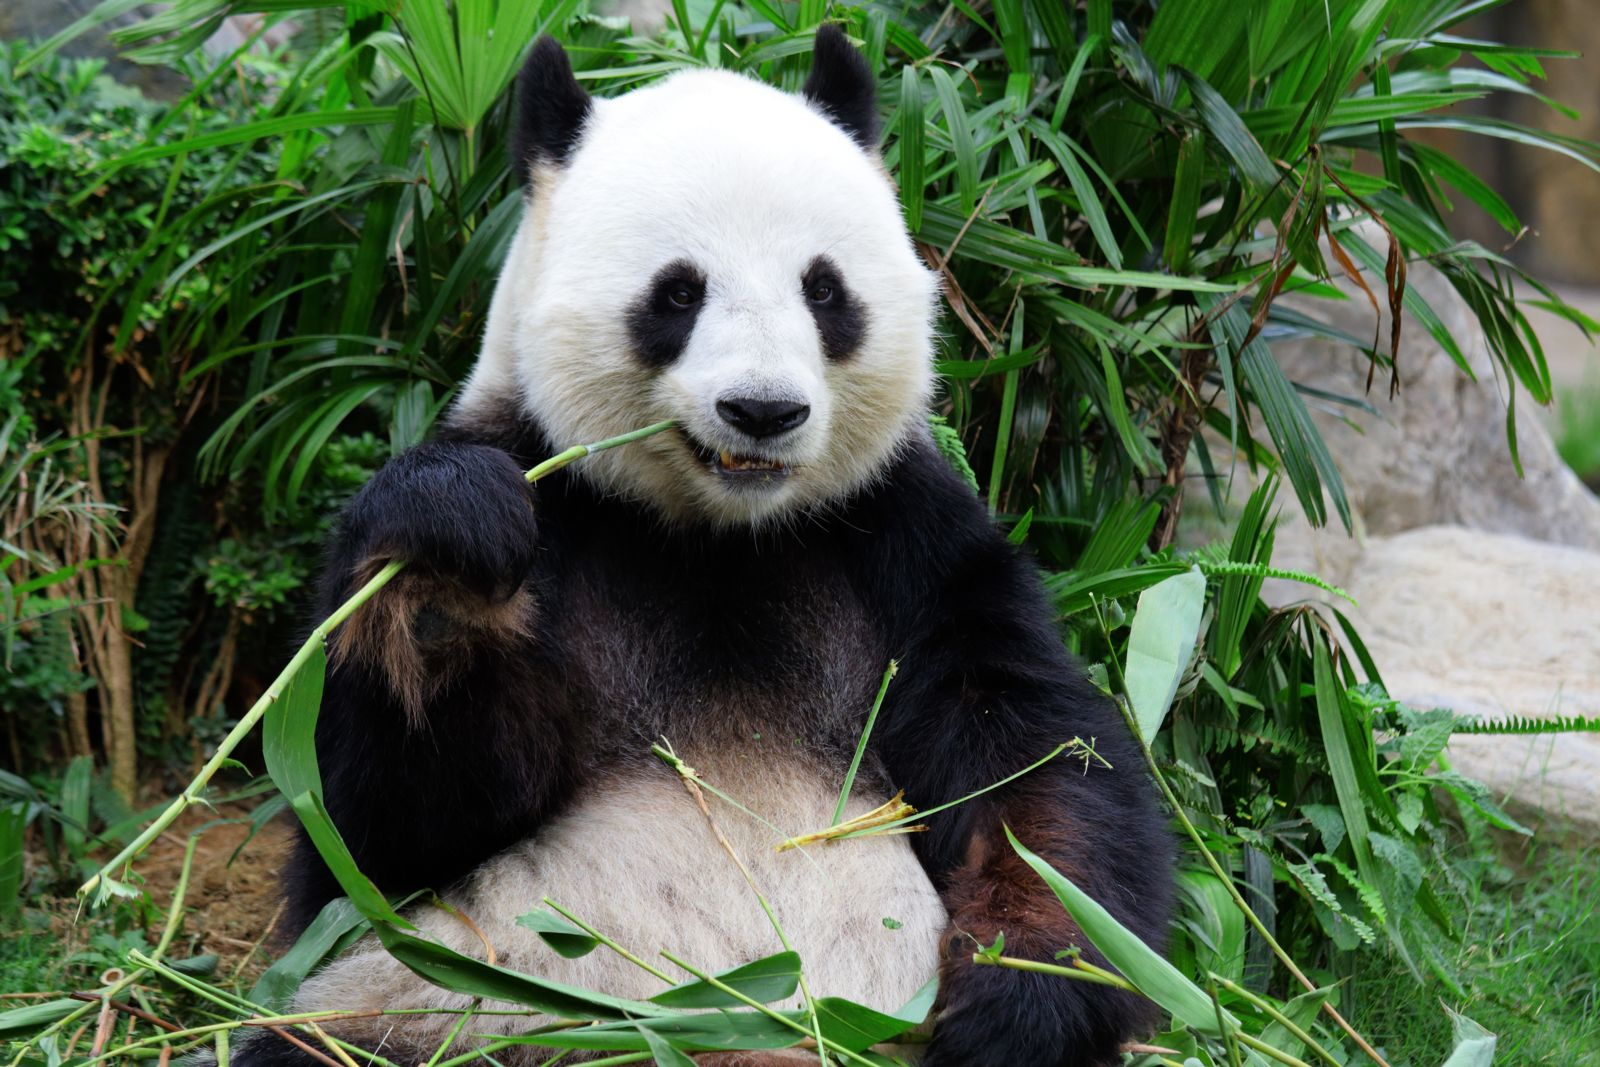 Bamboo socks may be the coolest things since pandas!